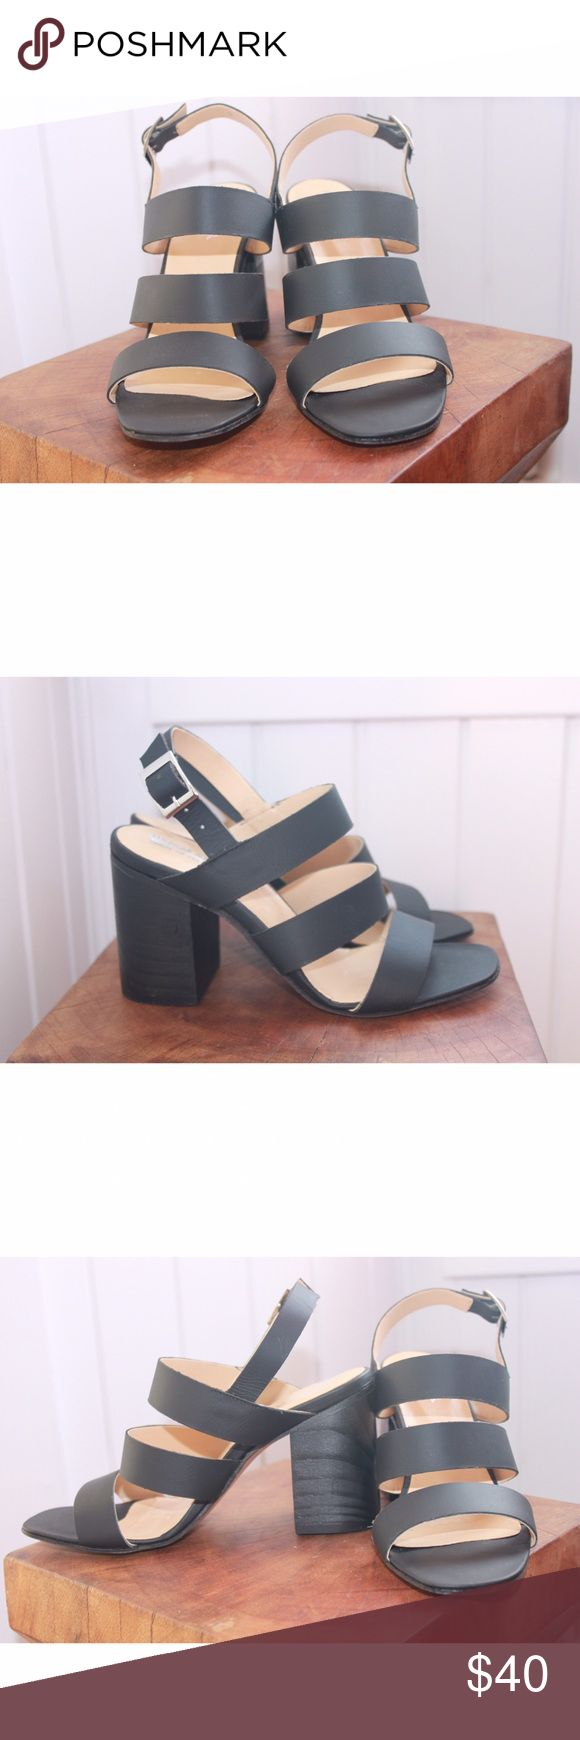 AMERICAN APPAREL block heel sandals These are in perfect never worn condition! Leather sandals from American Apparel. The absolute perfect every day sandal for spring/summer! American Apparel Shoes Heels